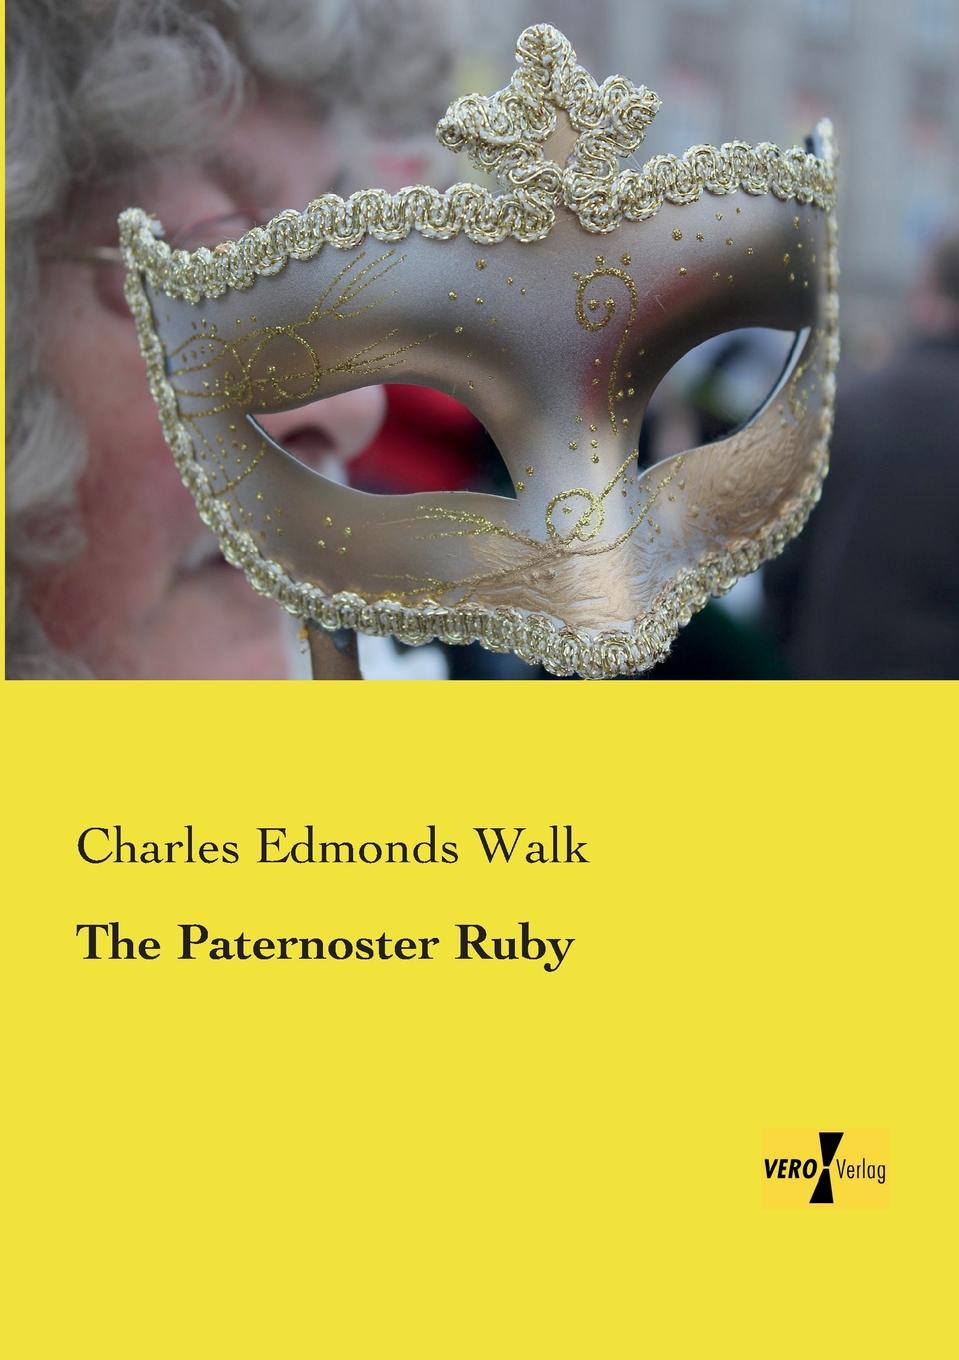 Charles Edmonds Walk The Paternoster Ruby